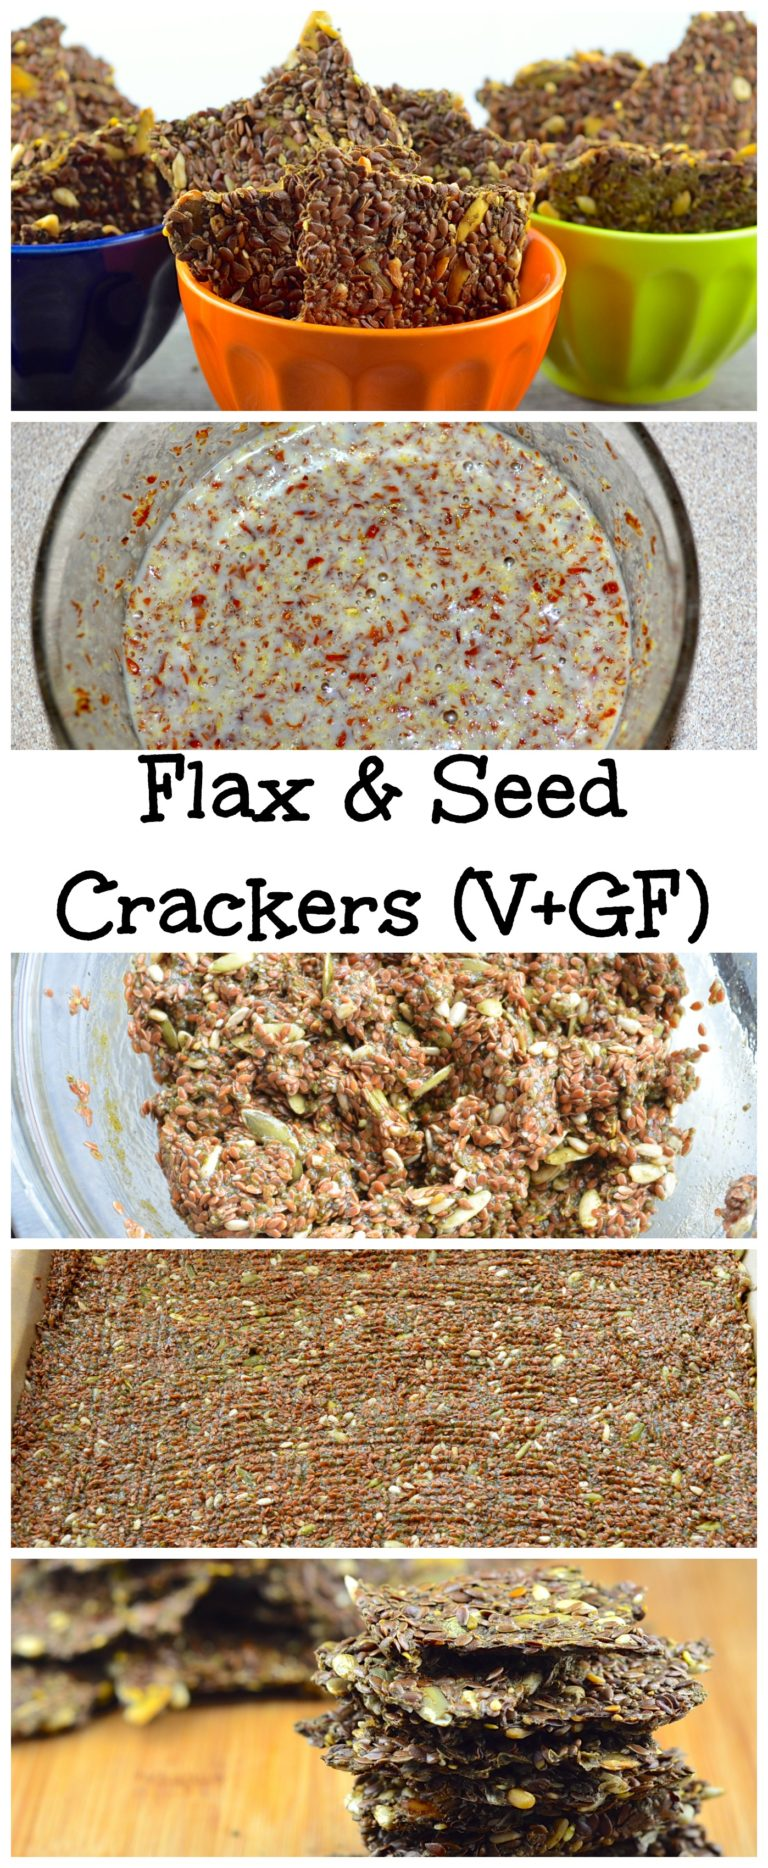 This Low Carb Flax and Chia Seed Crackers are paleo, vegan, gluten free and will satisfy your craving for crunchy foods when you are on a low carb diet.